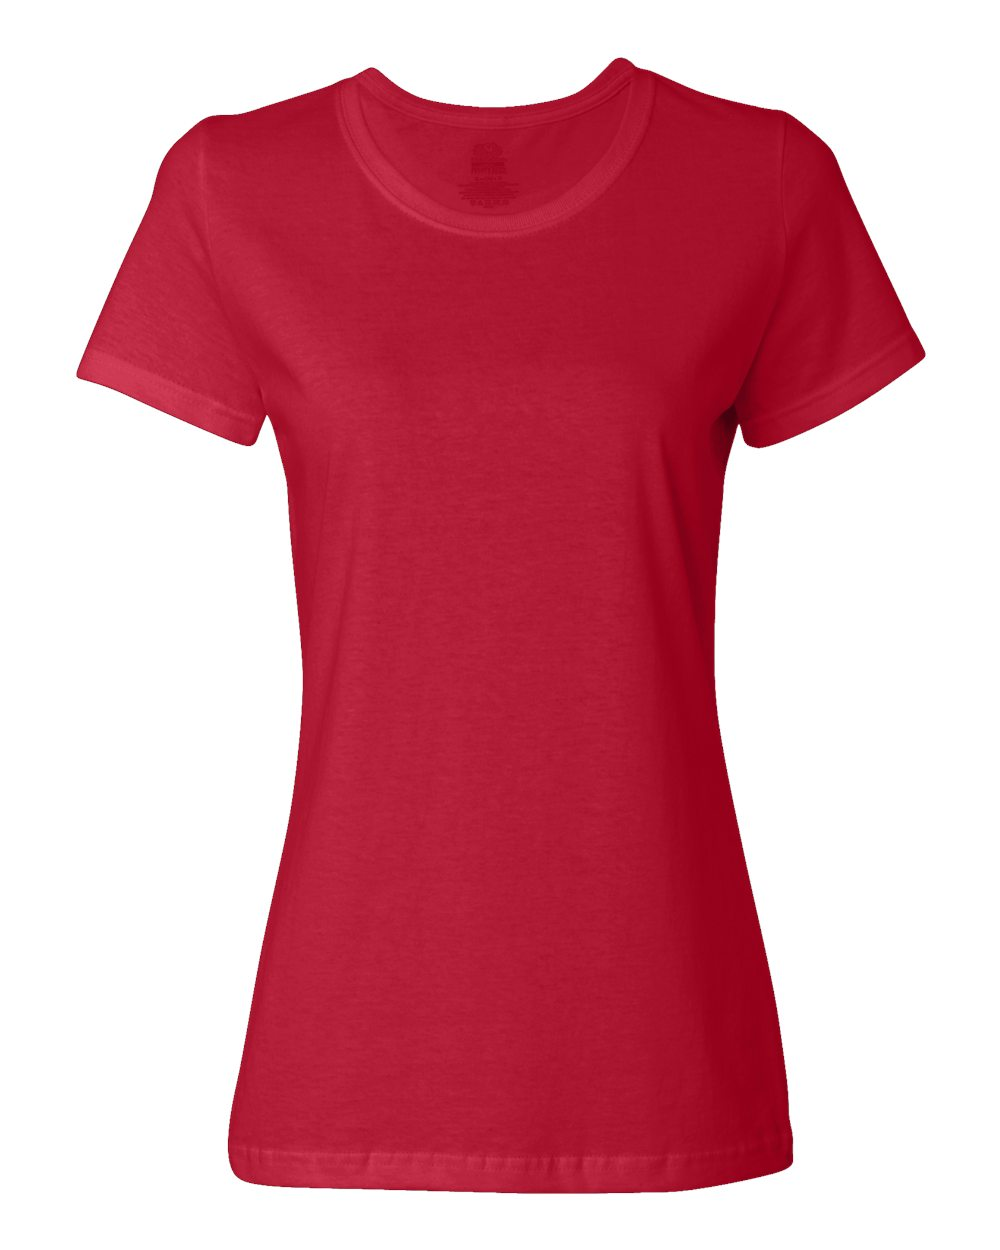 Fruit of the Loom Womens Red Custom T Shirts